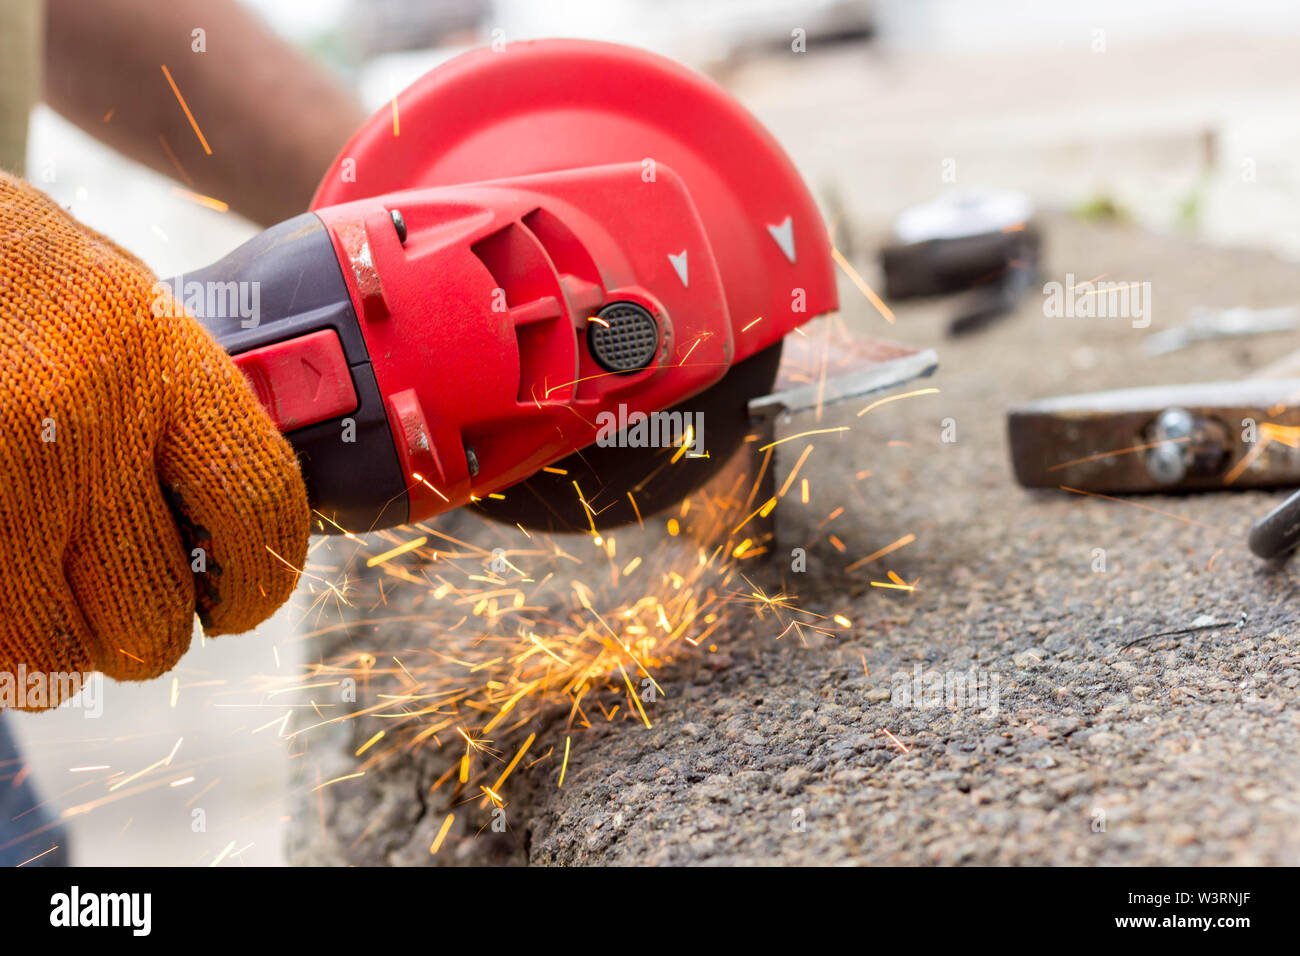 The worker uses an angle drive grinder to work with a metal corner. Angle drive grinder in action. - Stock Image